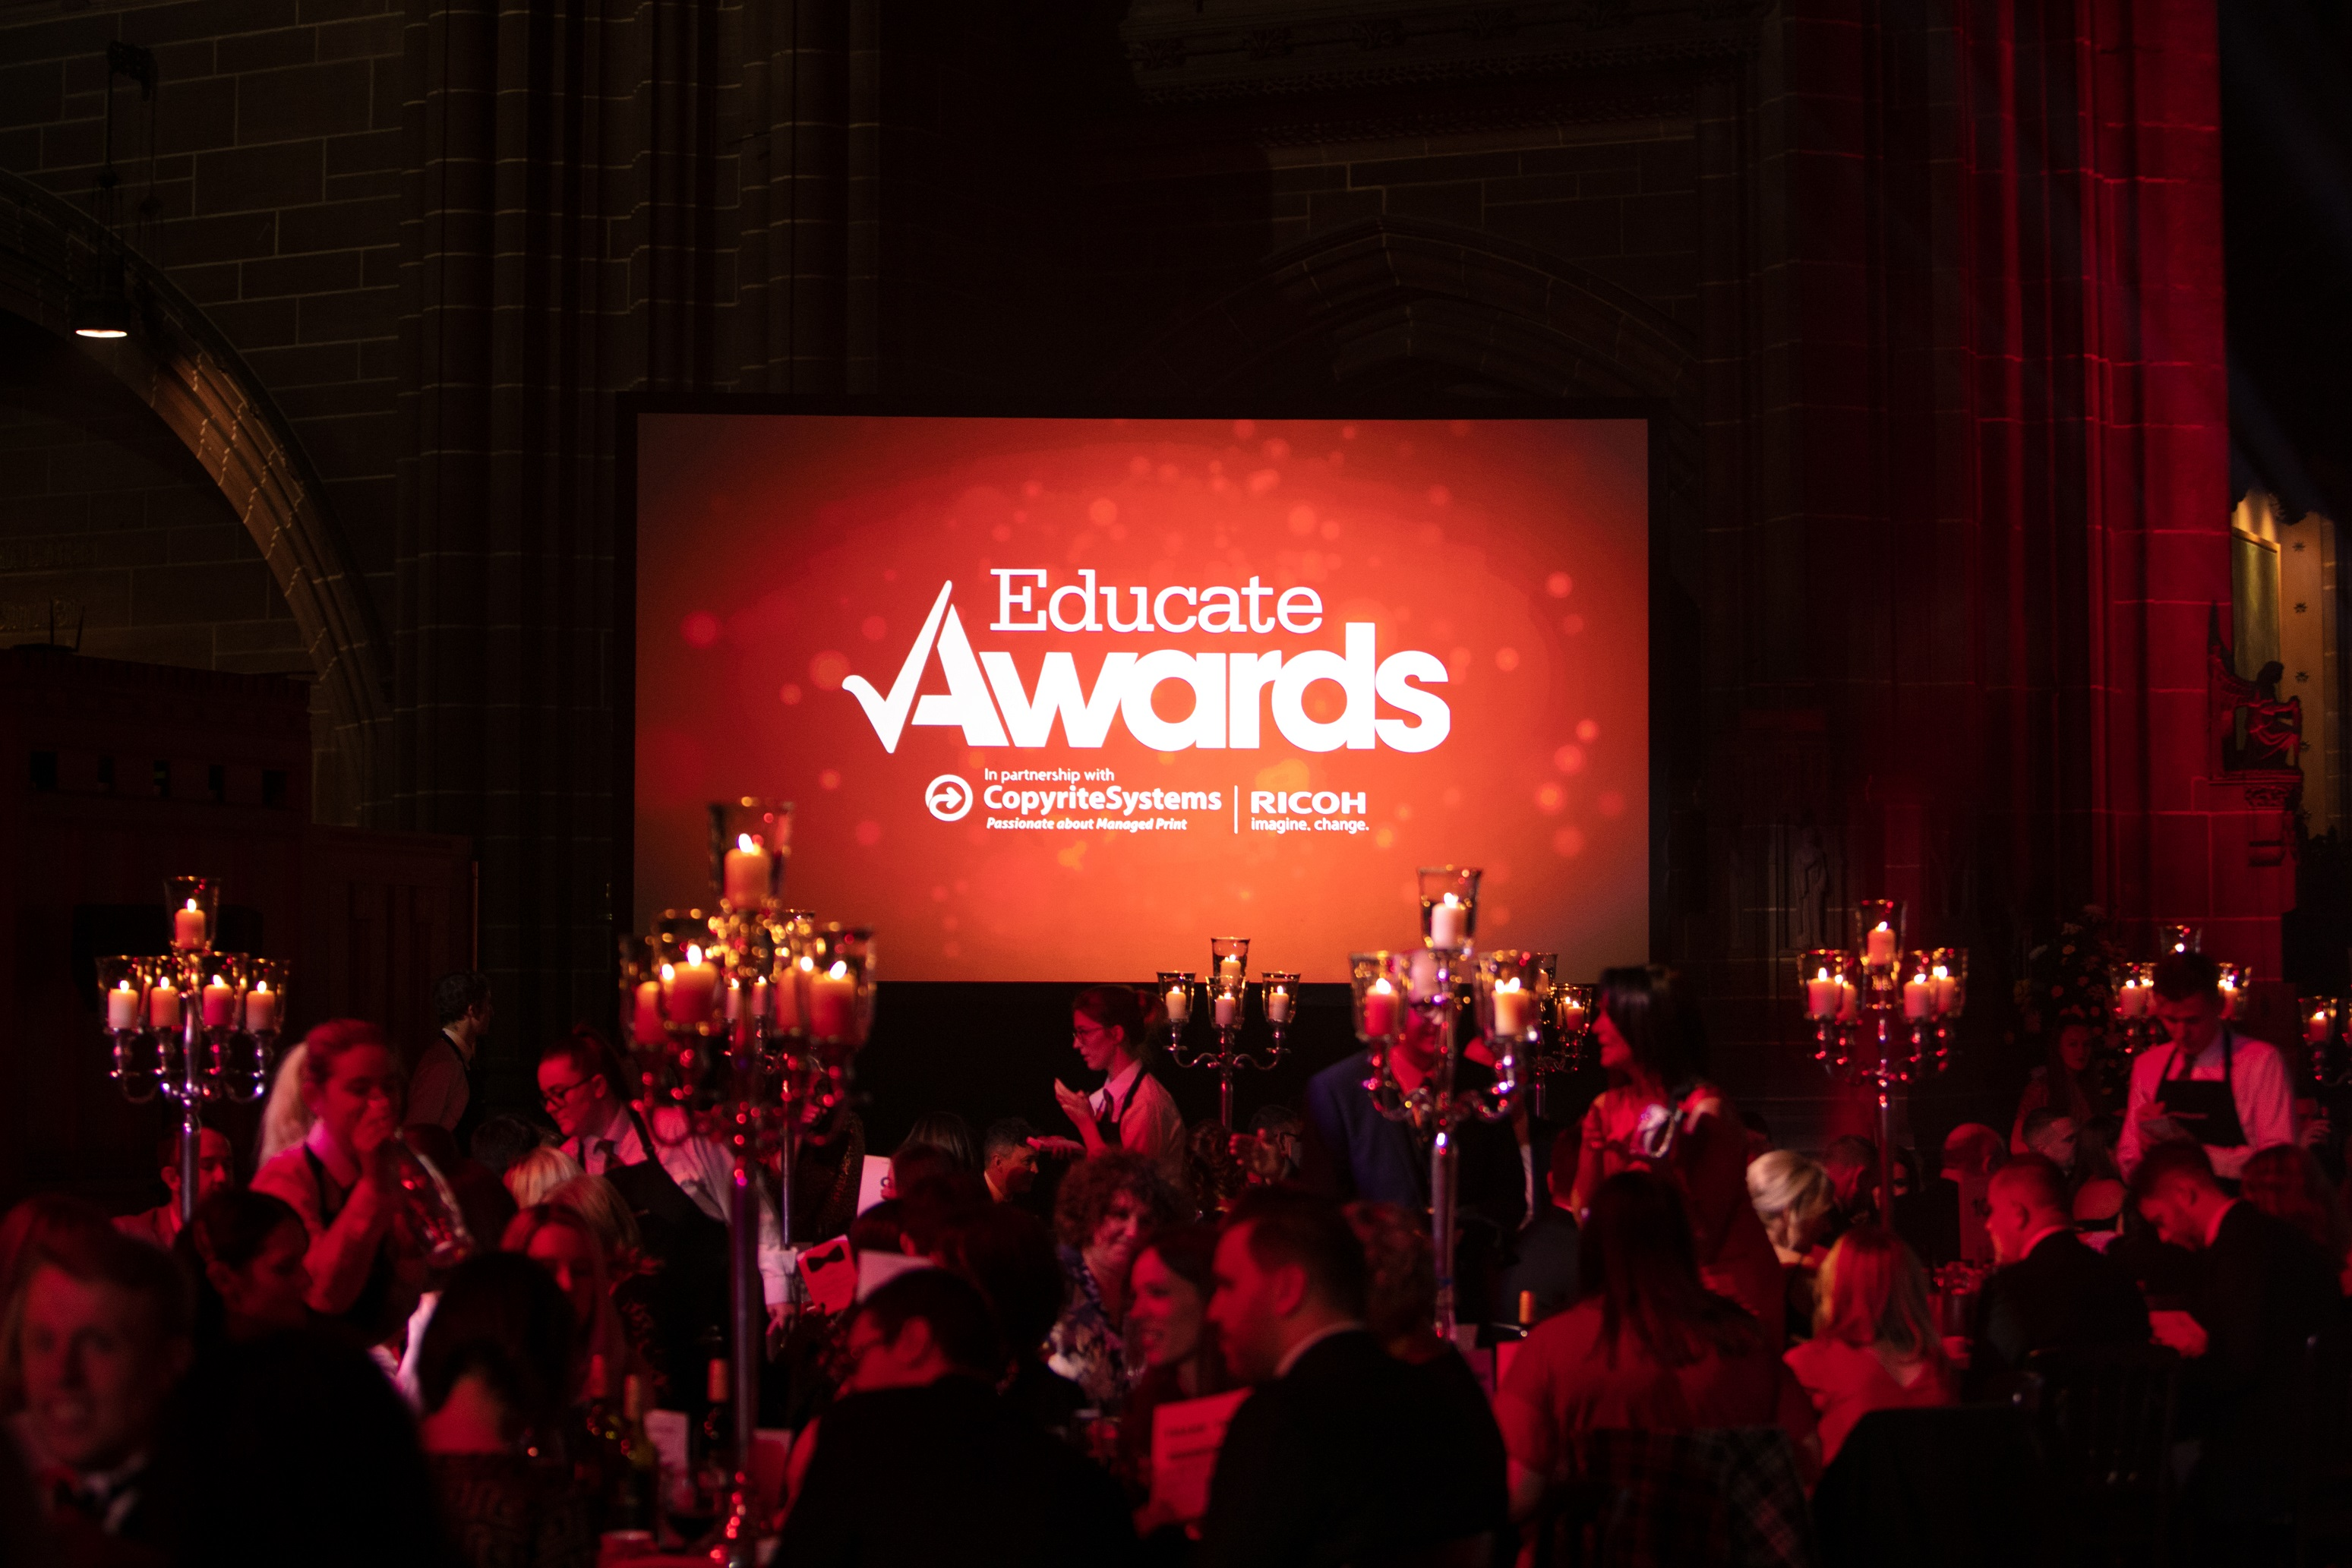 Two West Lancs schools make the Educate Awards 2021 shortlist